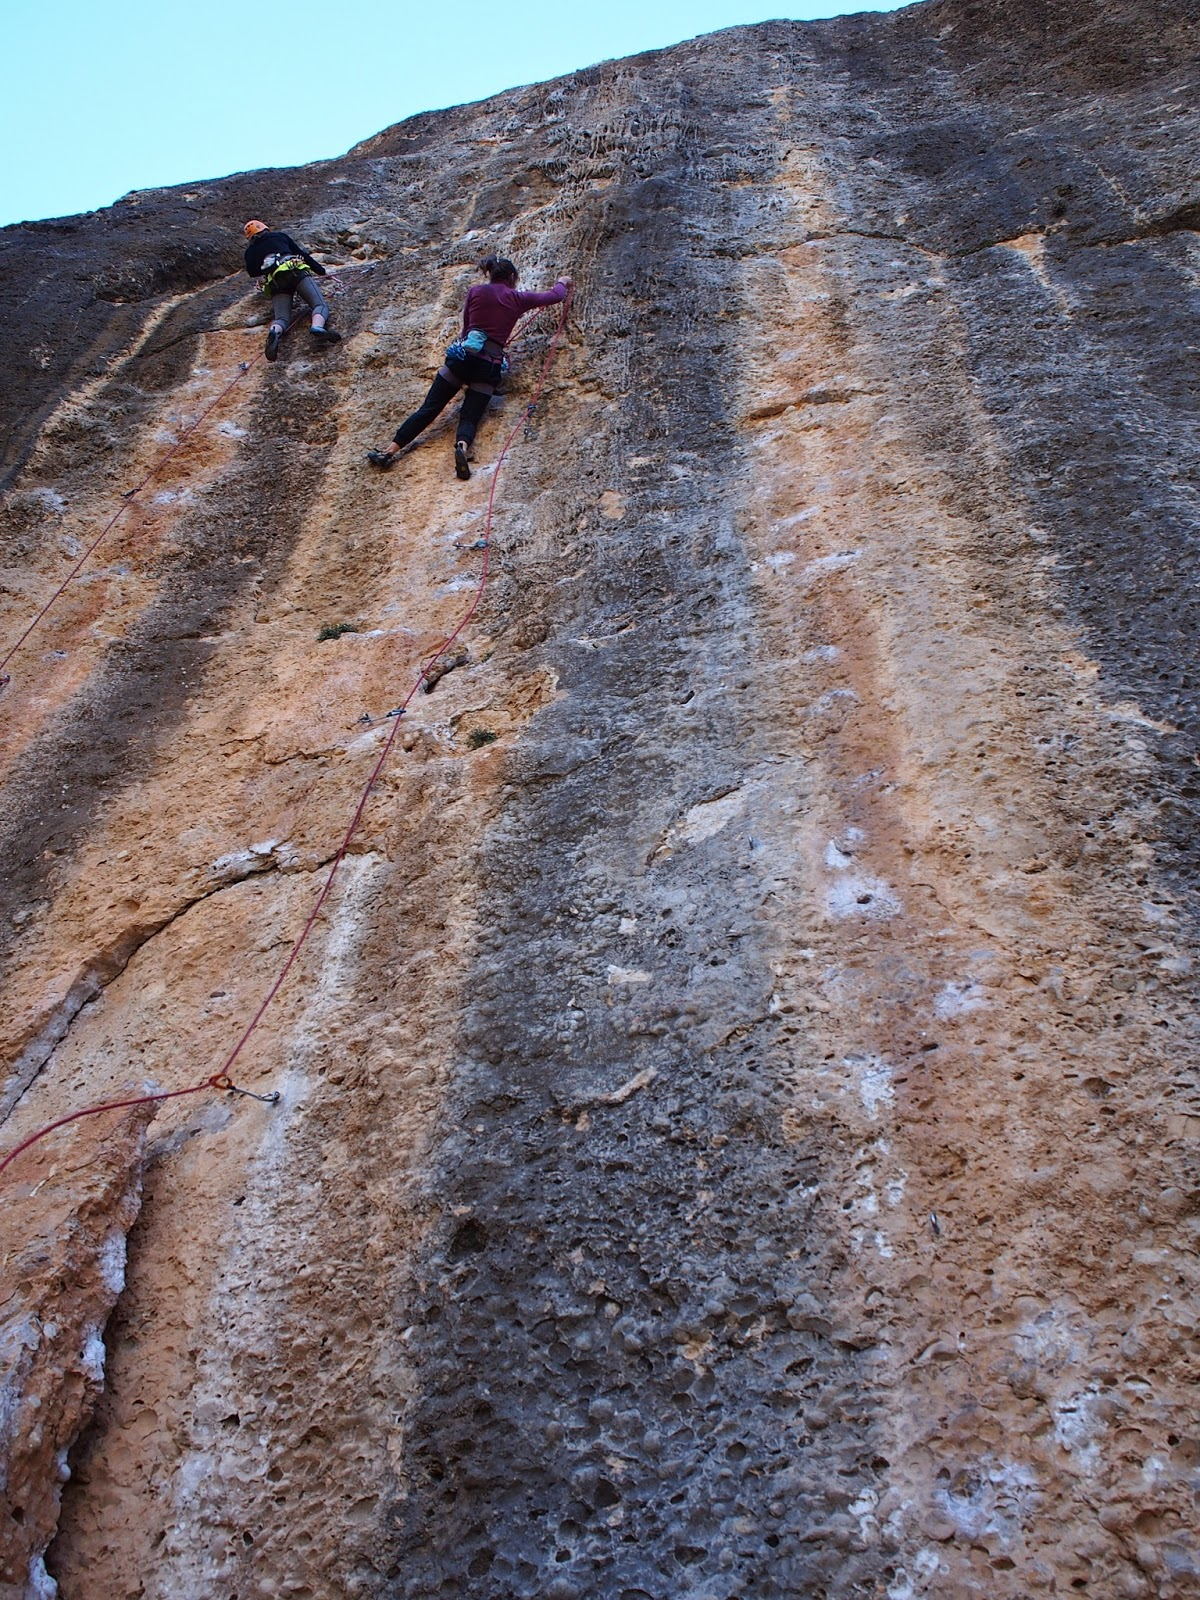 A very nice 7b+ in Margalef